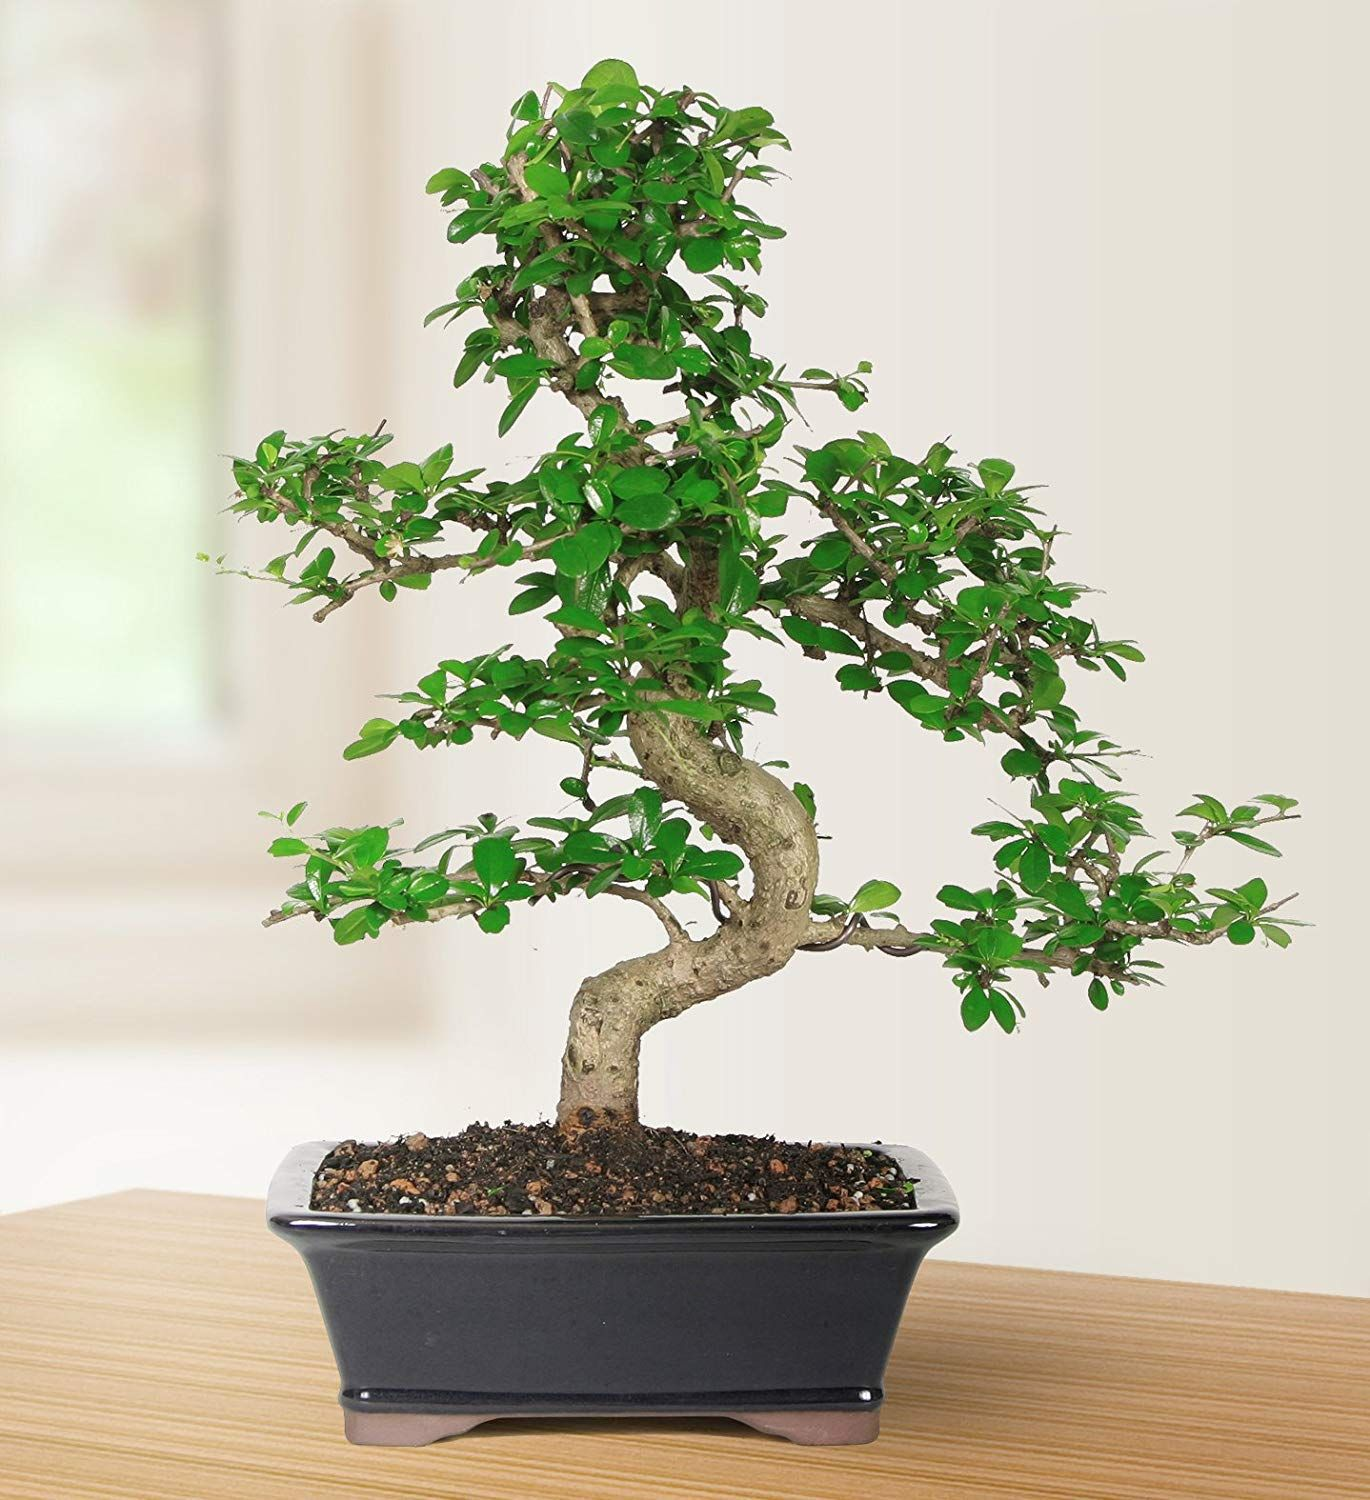 Fukien Tea Indoor Bonsai Tree 10 Years Old 10 To 14 Tall With Decorative Container Indoor Bonsai Tree Indoor Bonsai Bonsai Tree